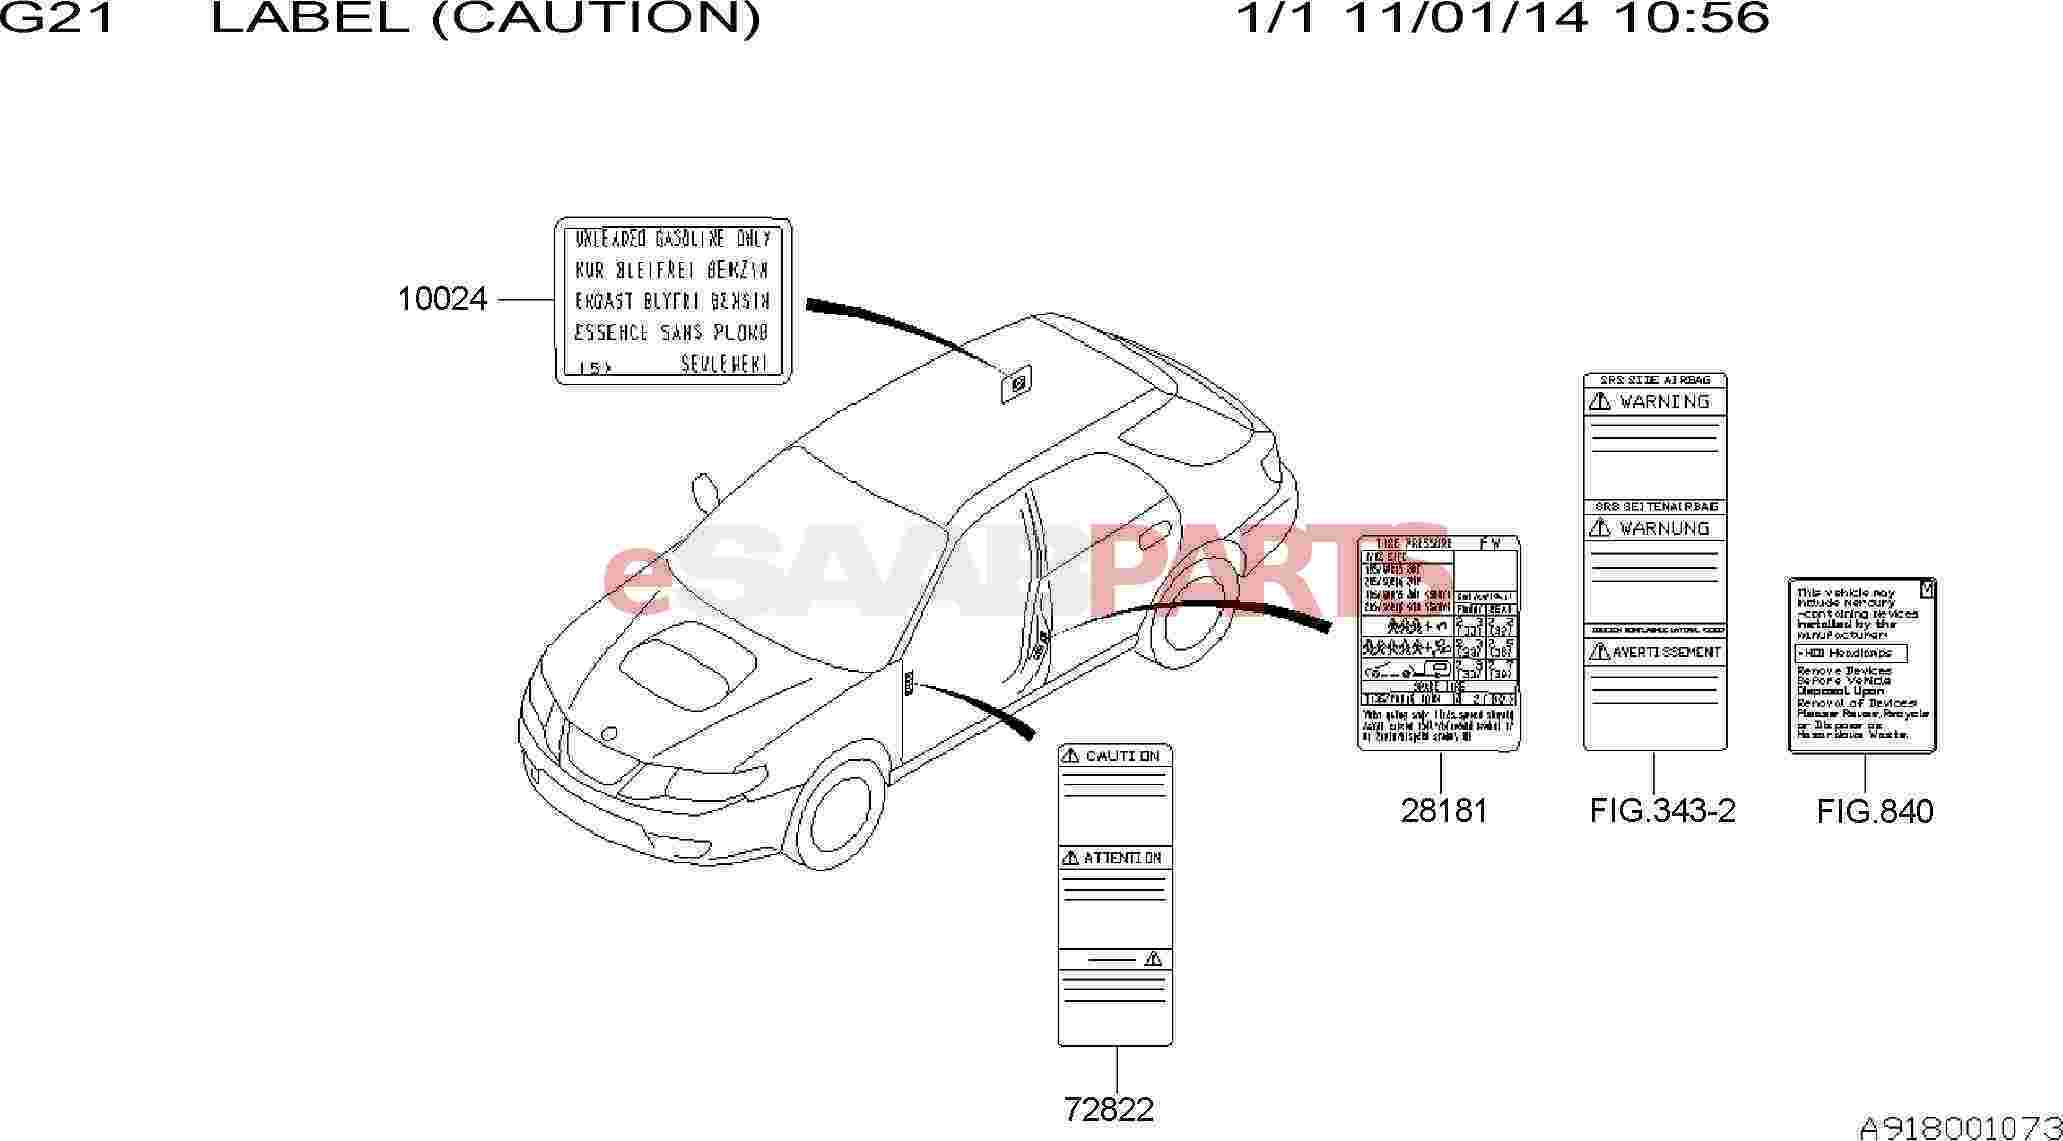 2000 Saturn Sc1 Wiring Schematic Saturn Car Stereo